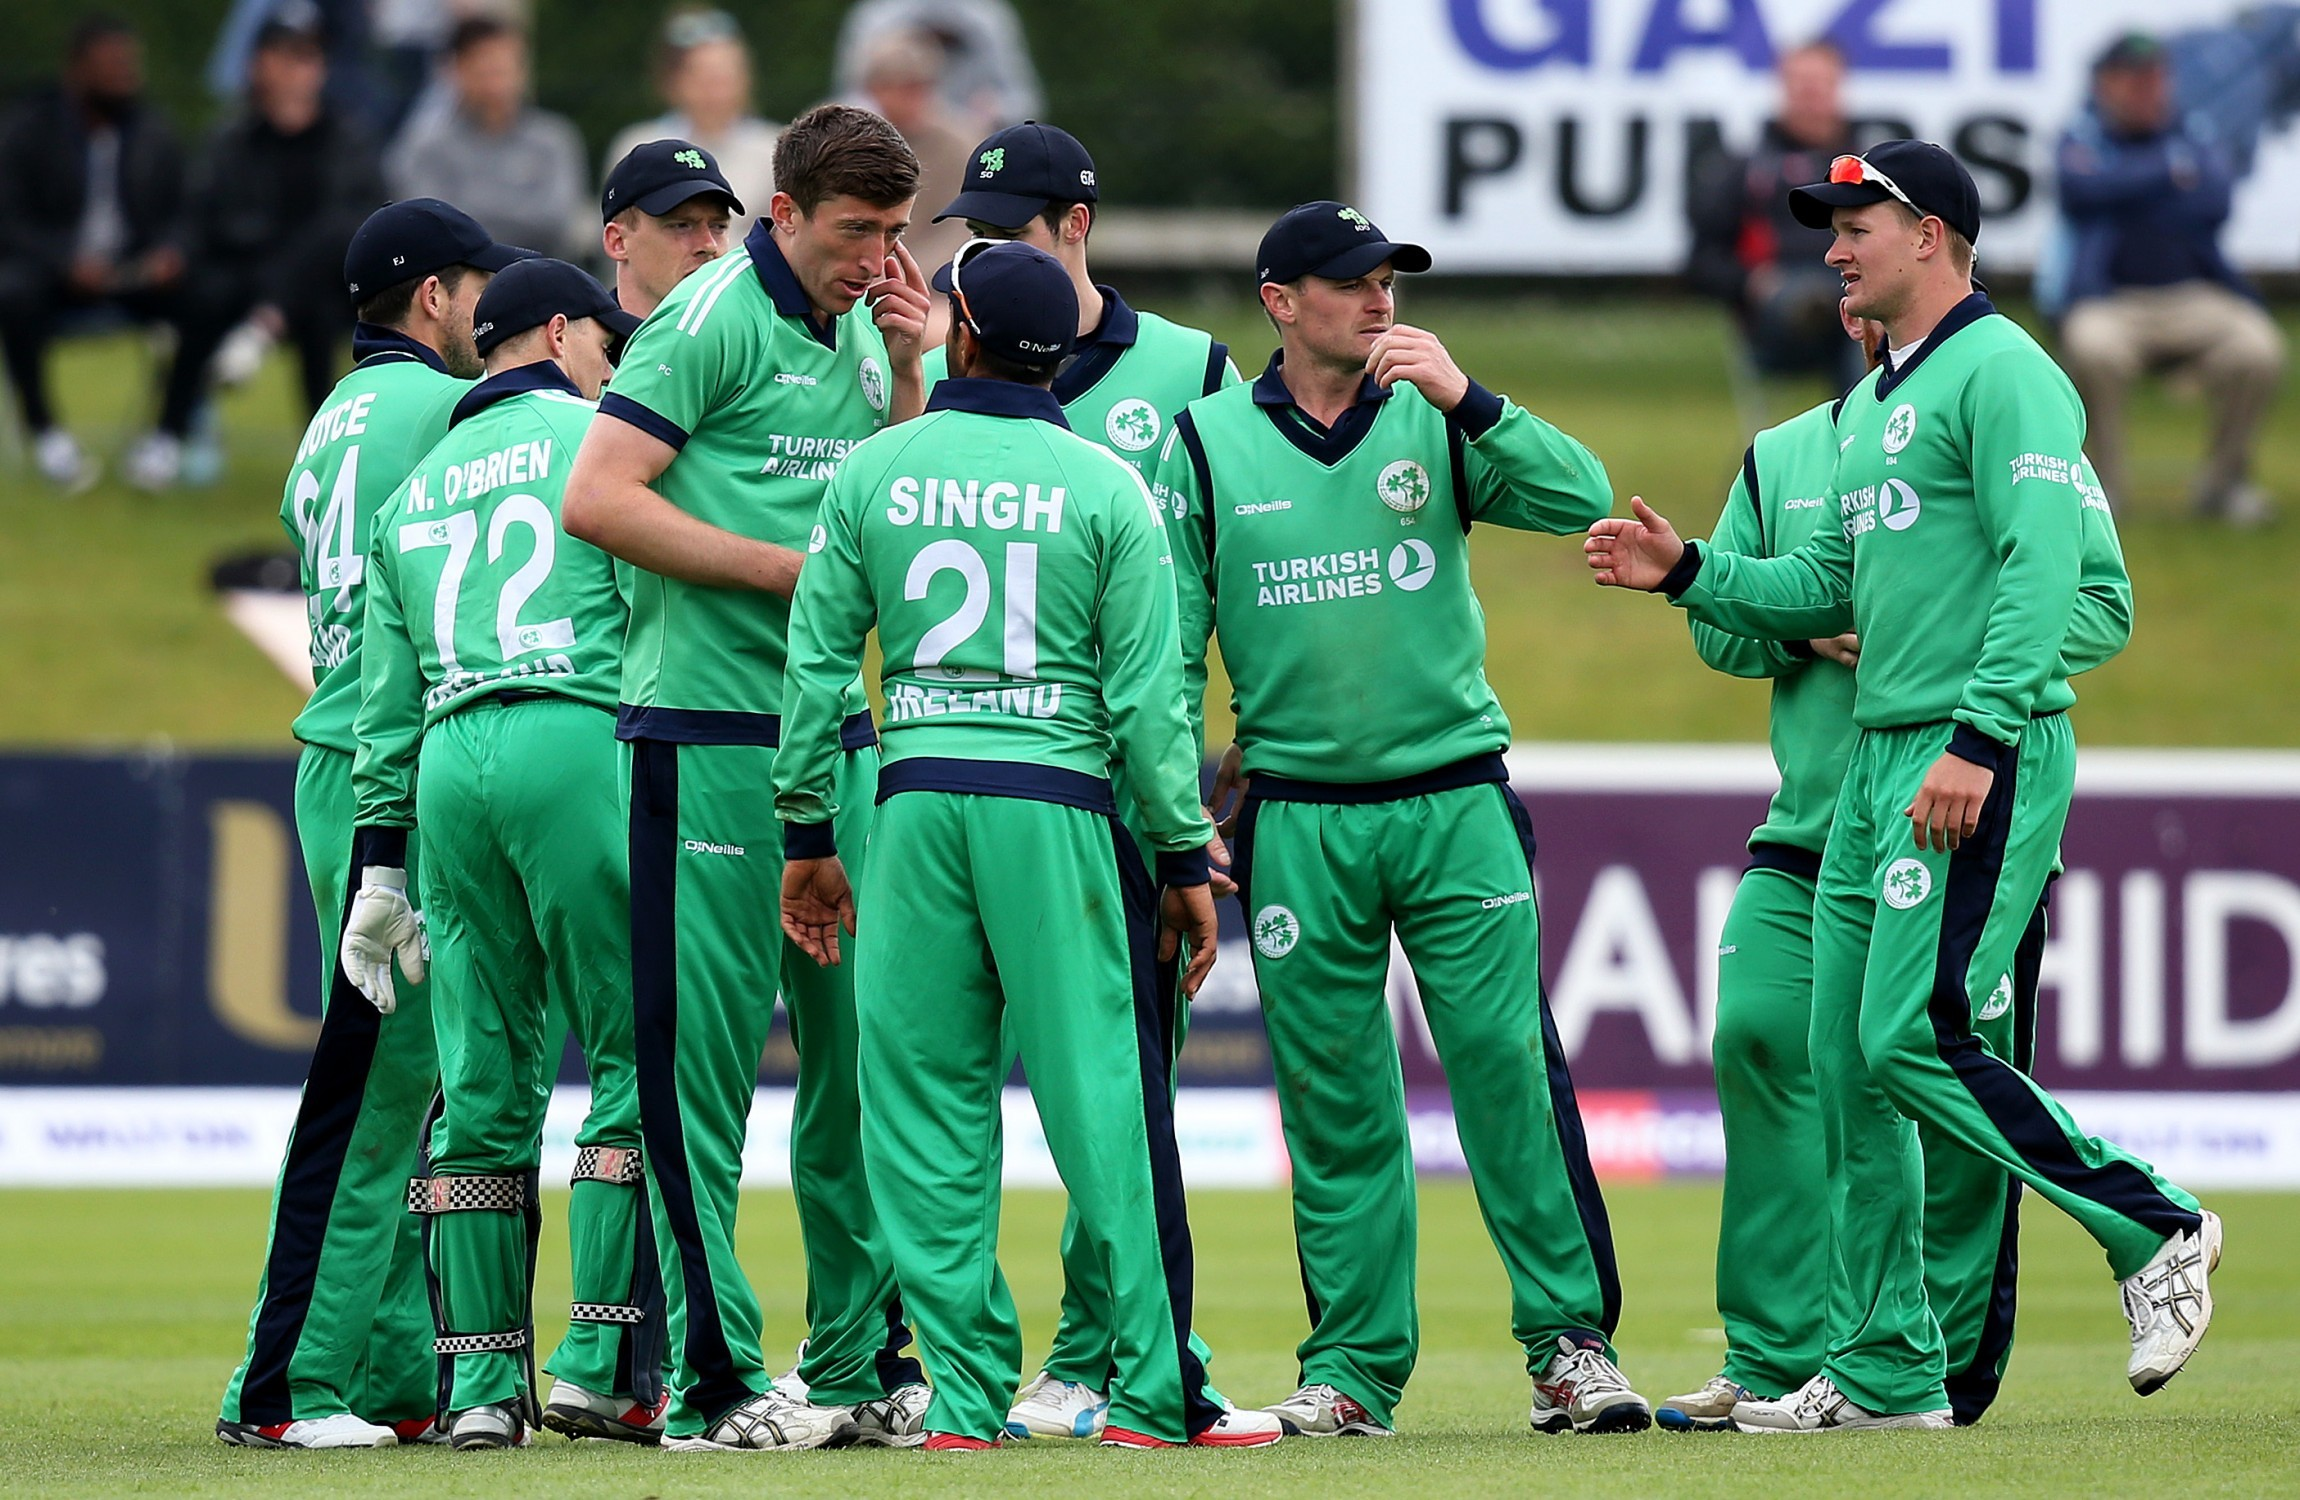 Ireland granted full Test status by ICC